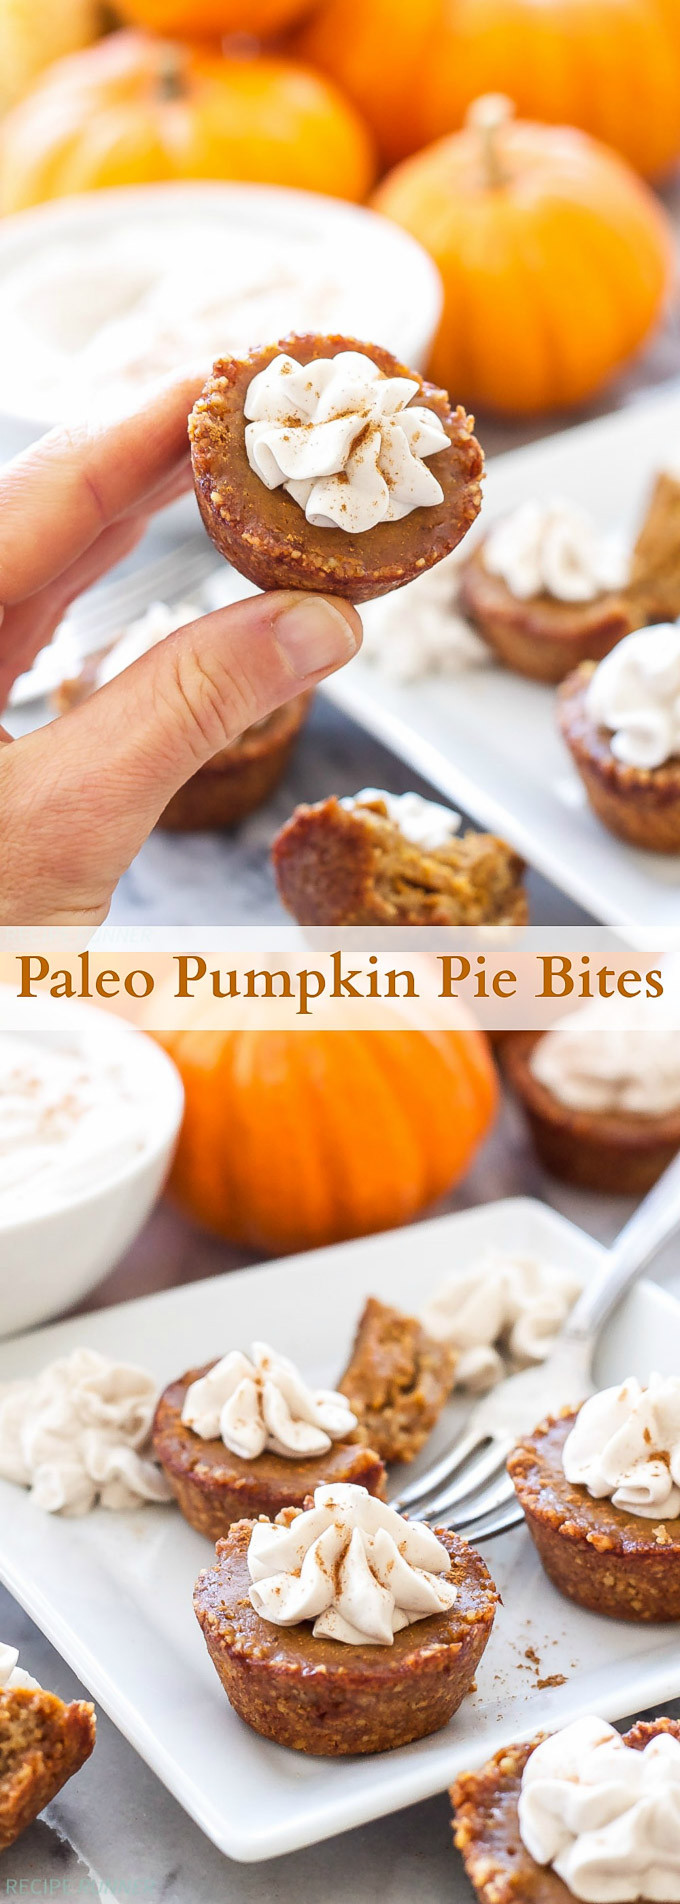 Paleo Pumpkin Pie  Paleo Pumpkin Pie Bites Recipe Runner